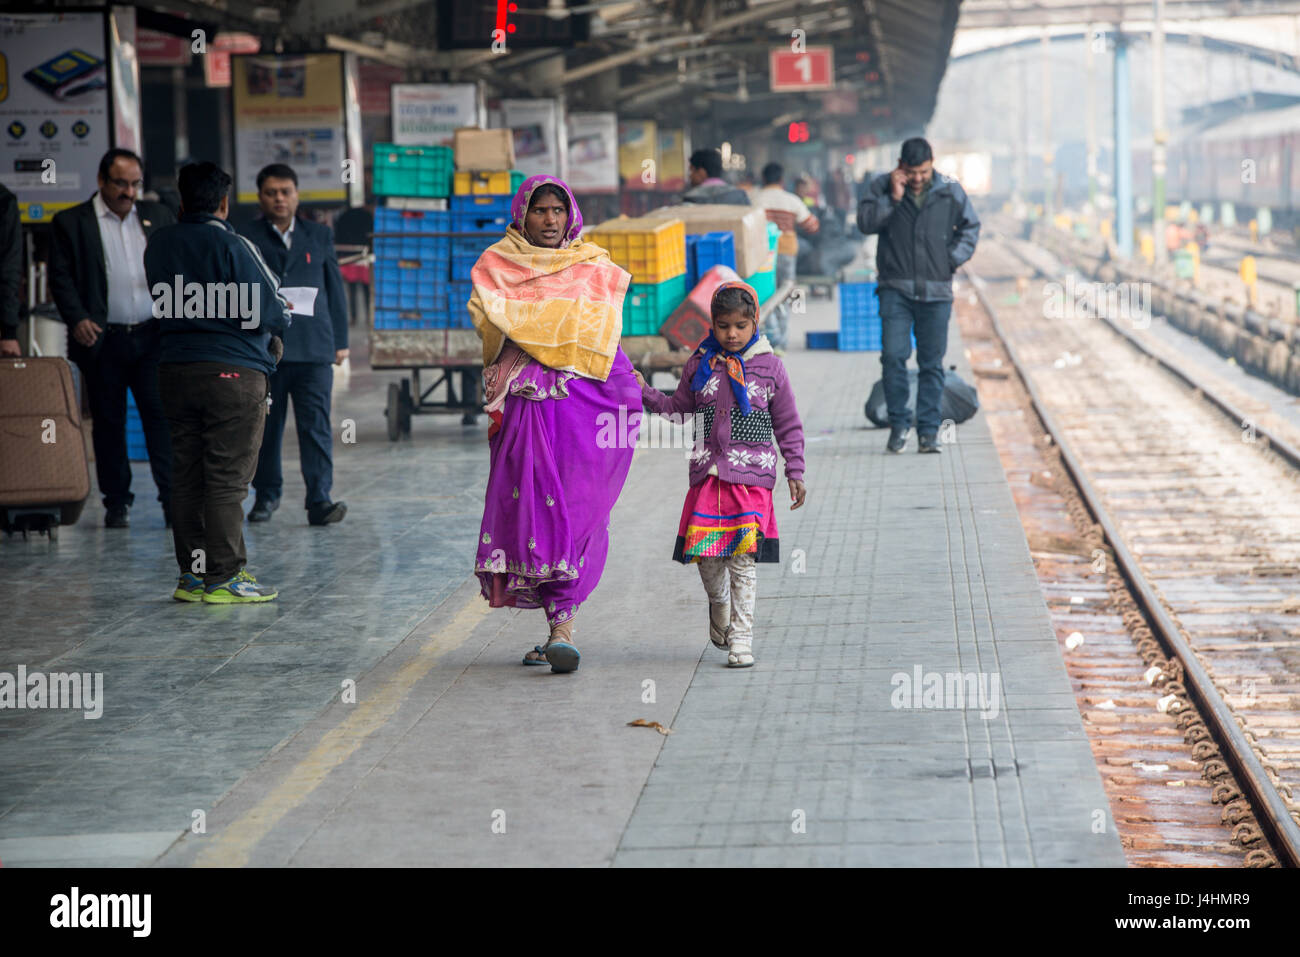 A mother and daughter walk down a train platform at a station in New Delhi, India. - Stock Image